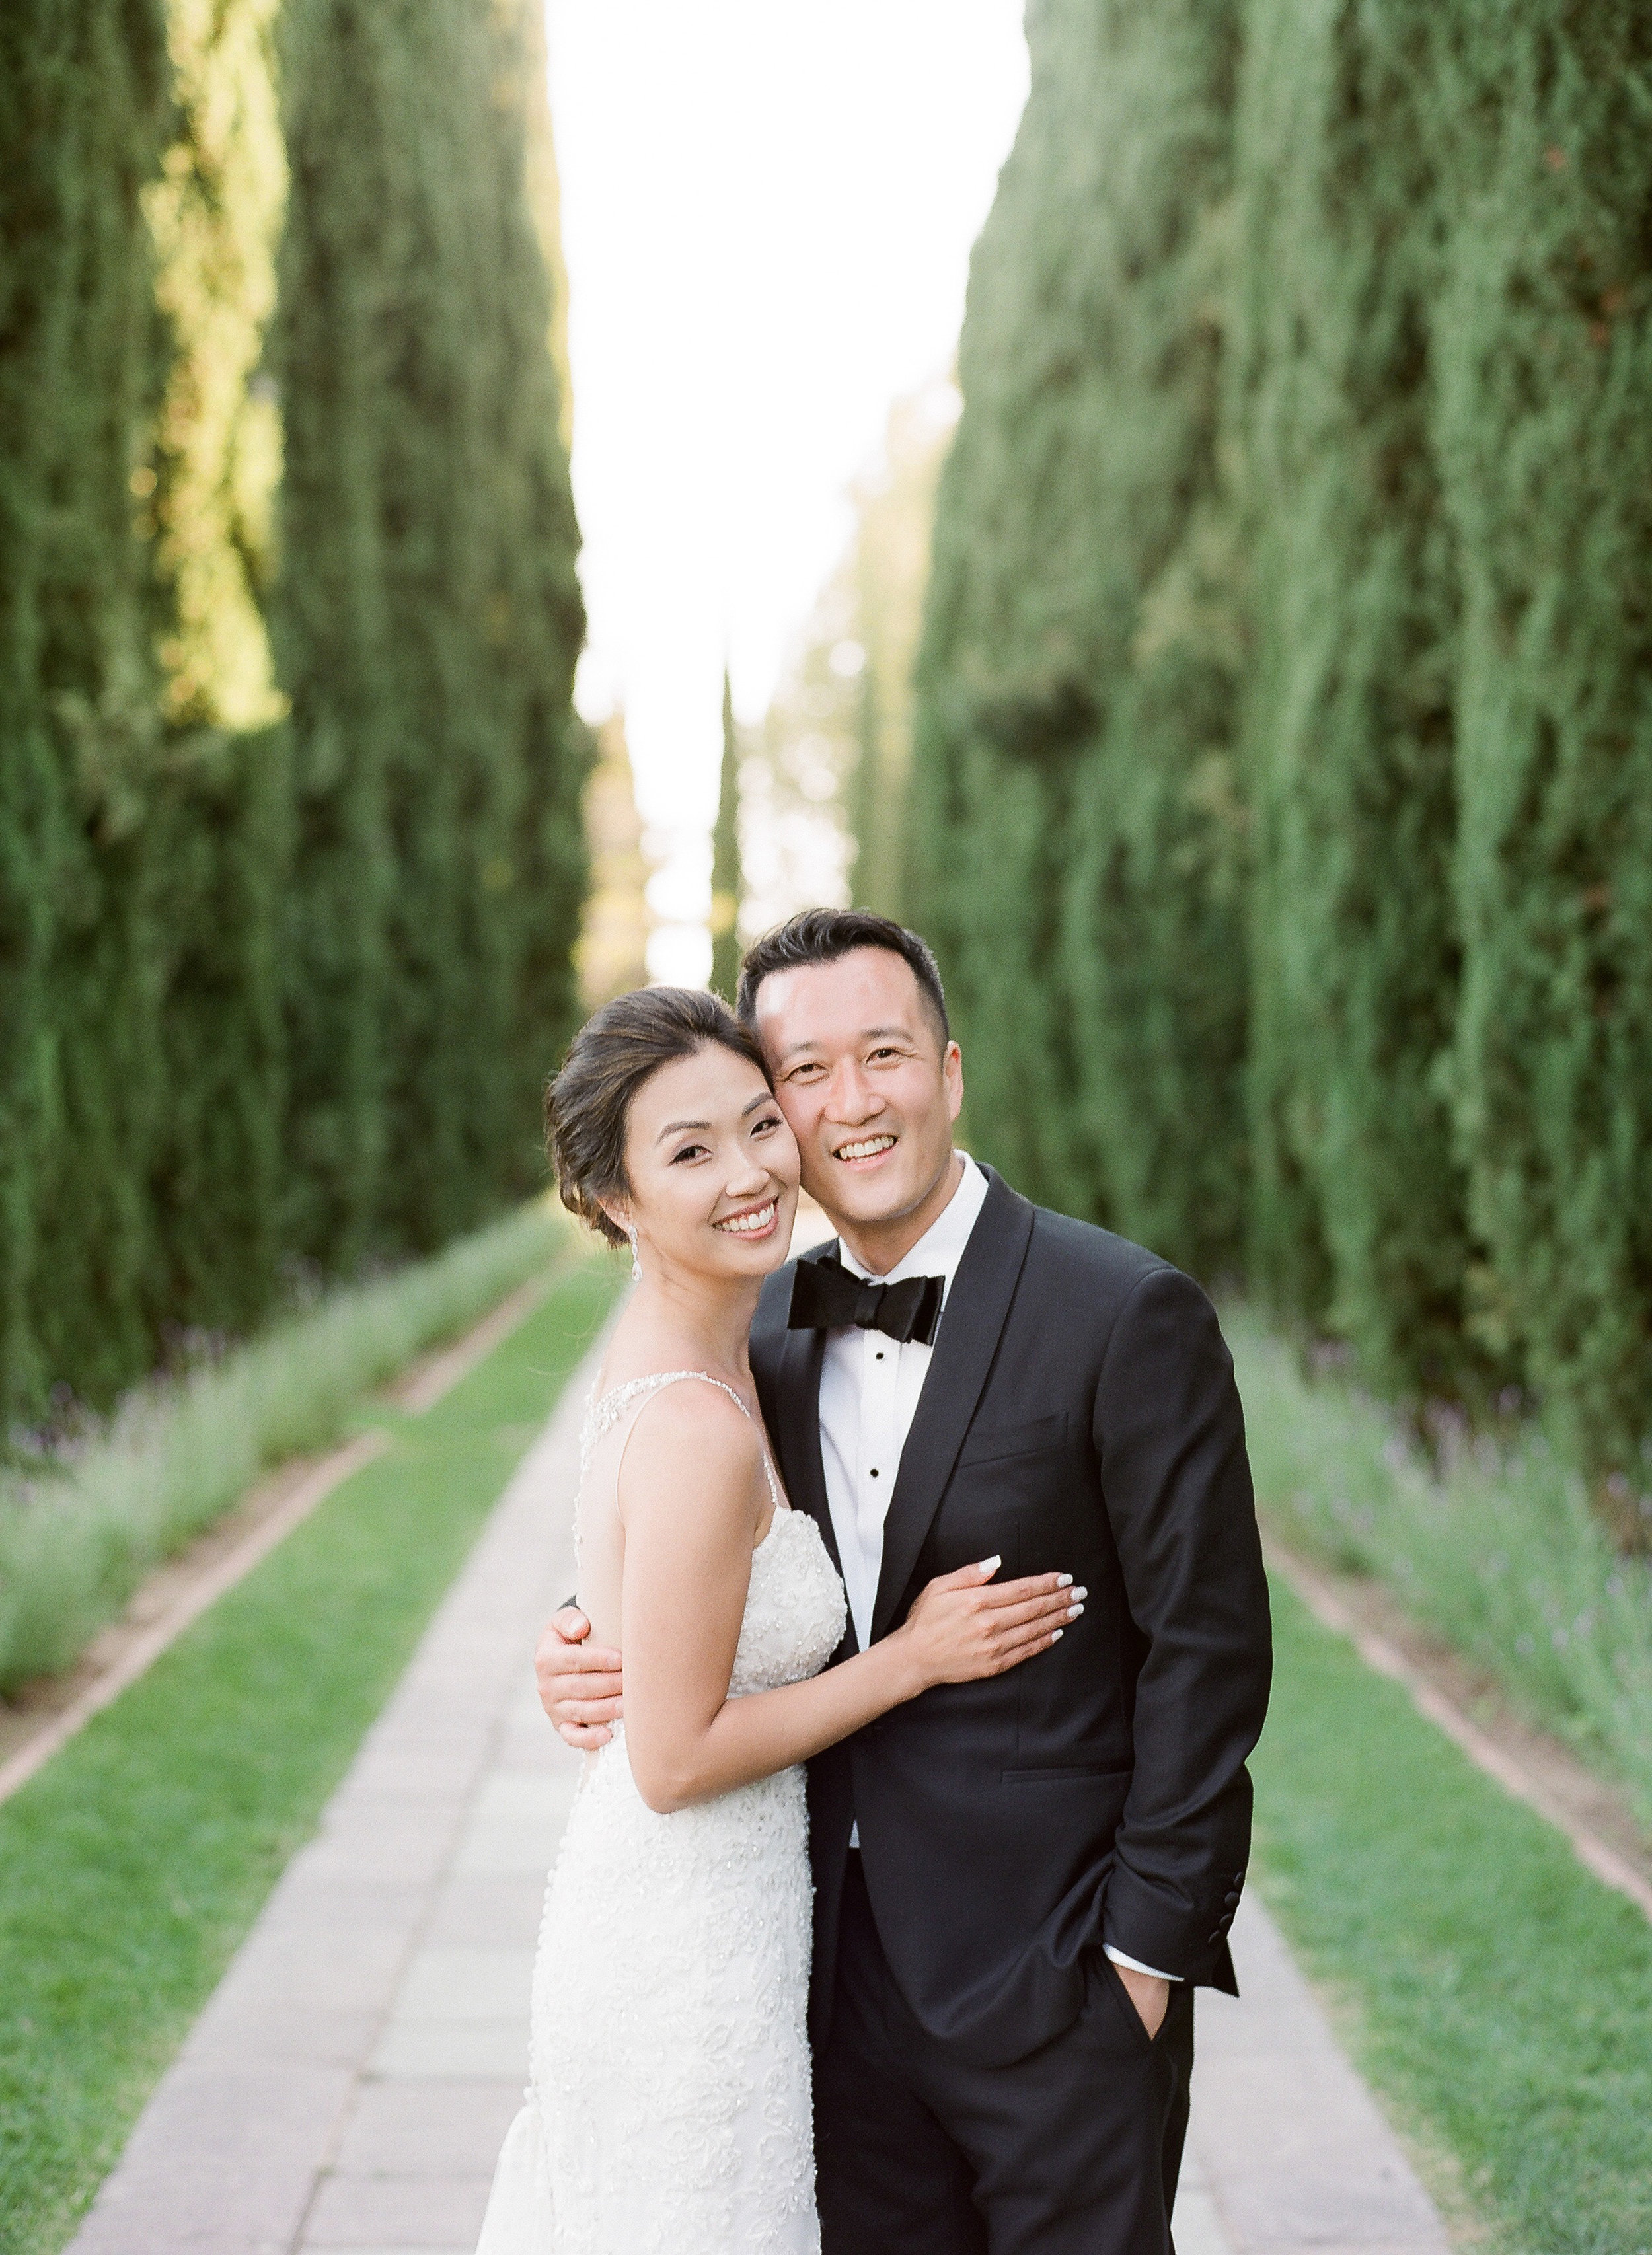 Greystone-Mansion-Wedding-Kristina-Adams-901.jpg